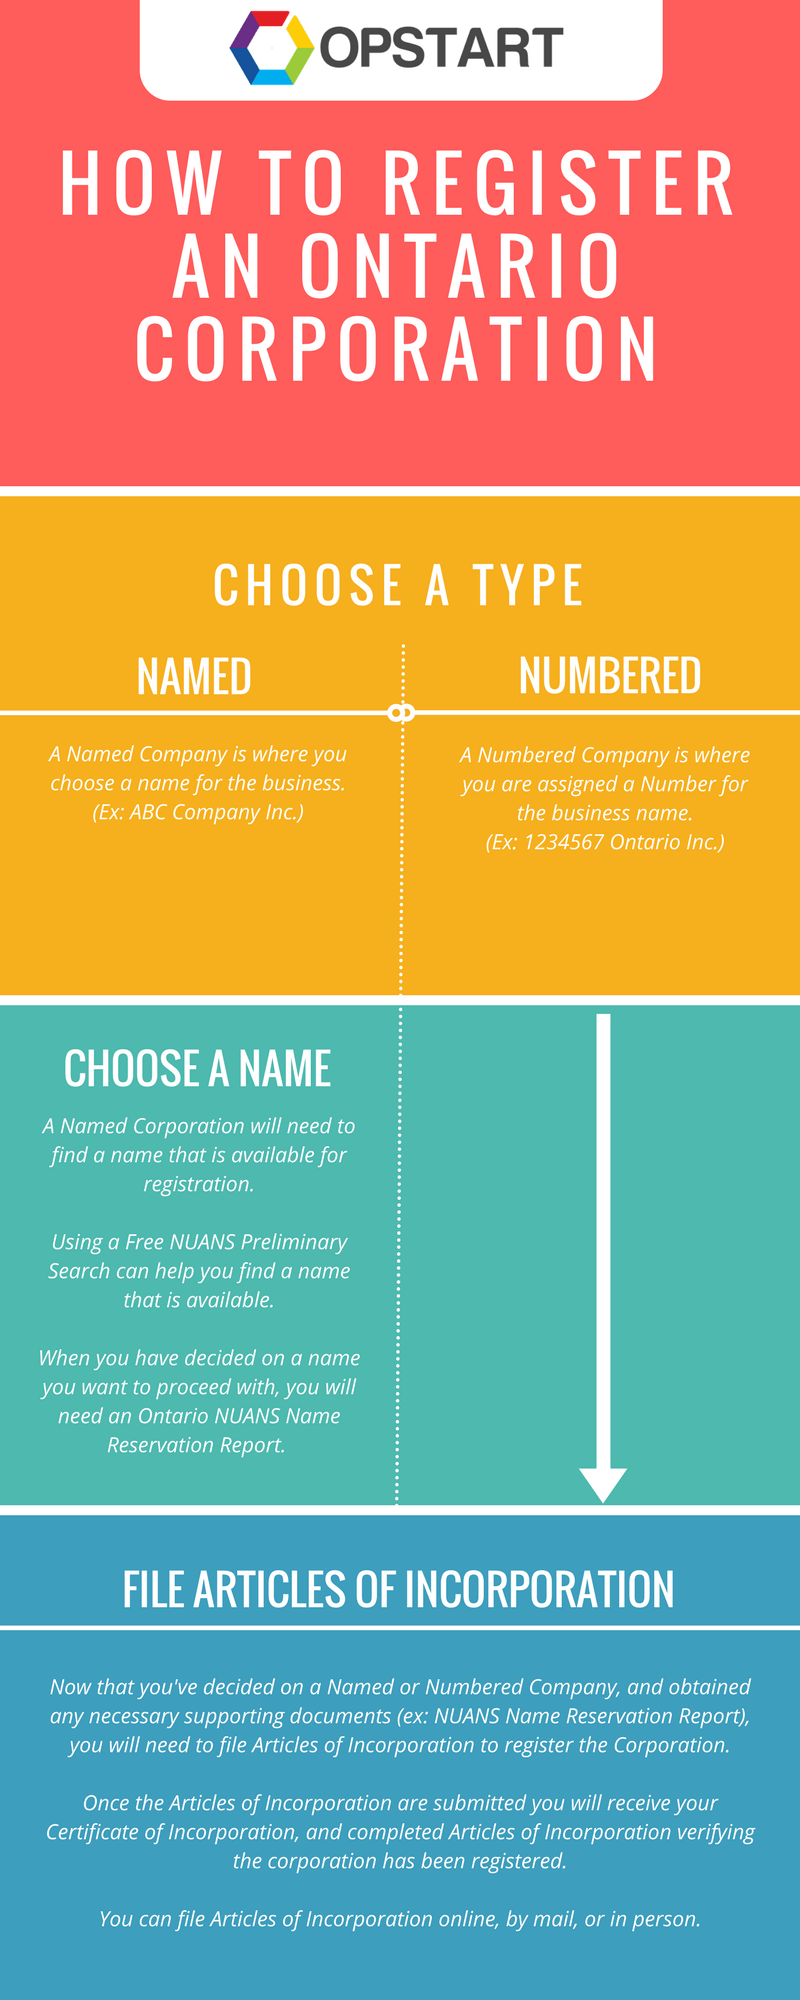 How To Register An Ontario Corporation [Infographic].png